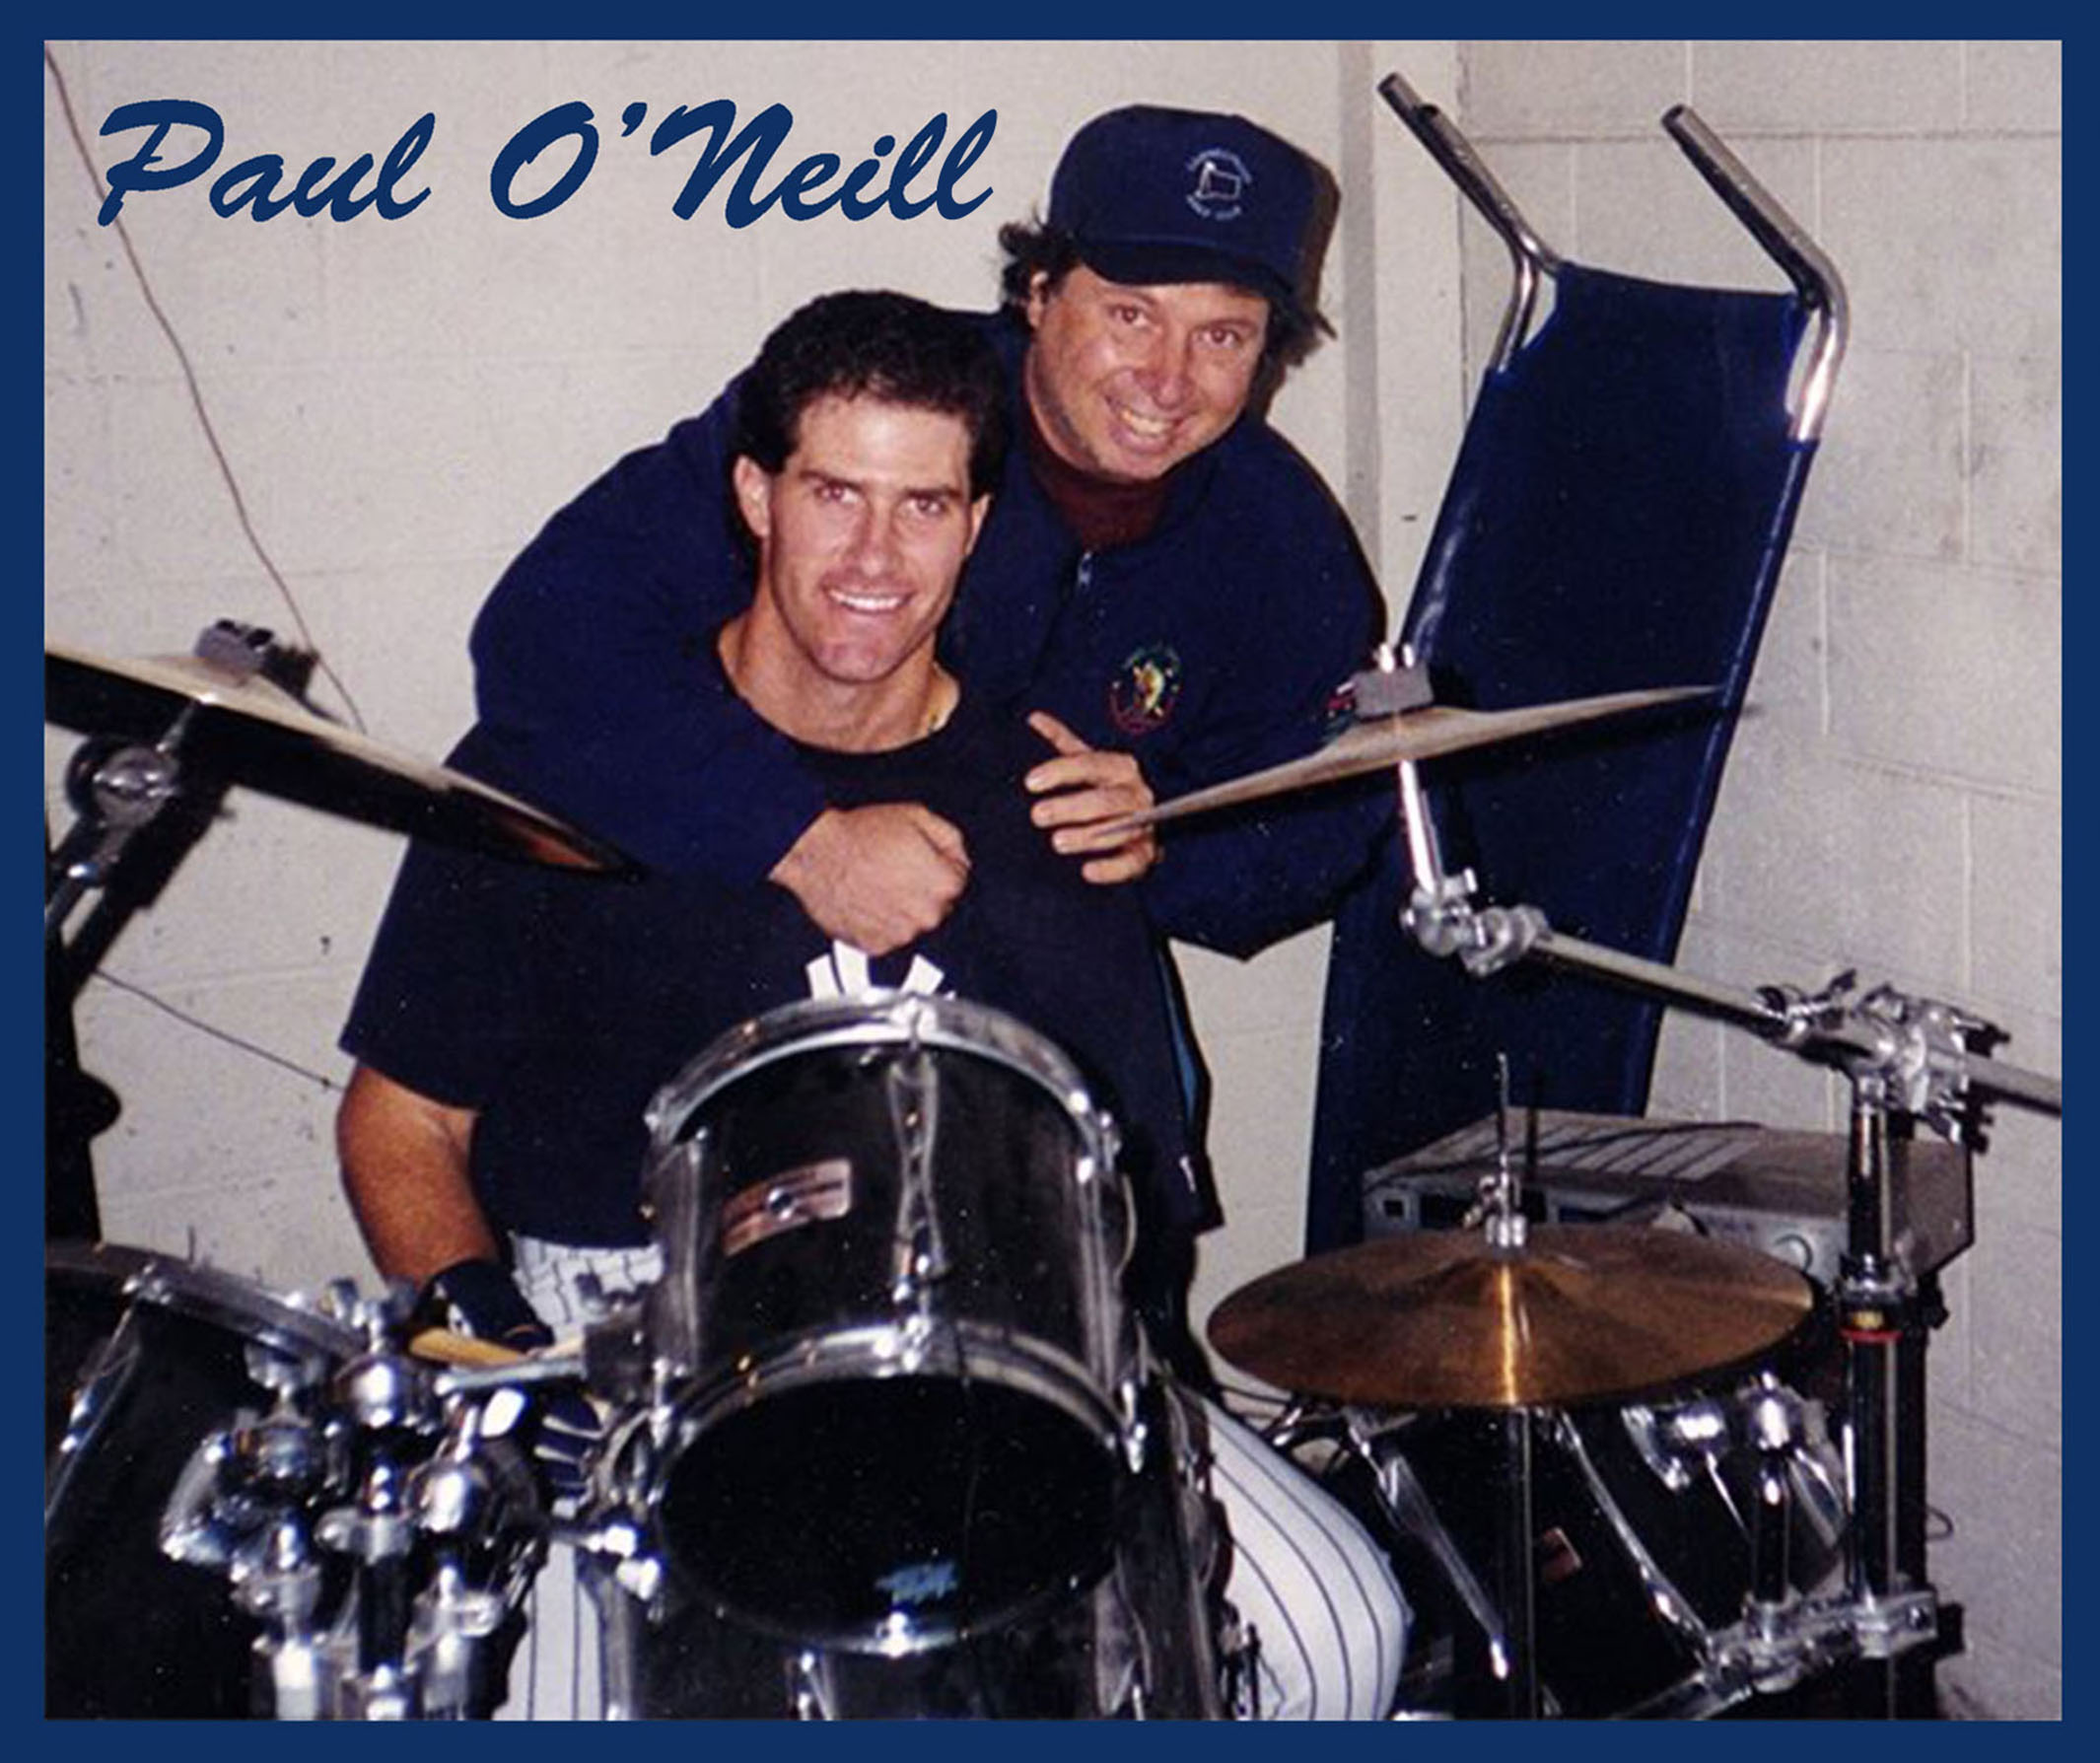 Paul-O'Neill-Drums.jpg